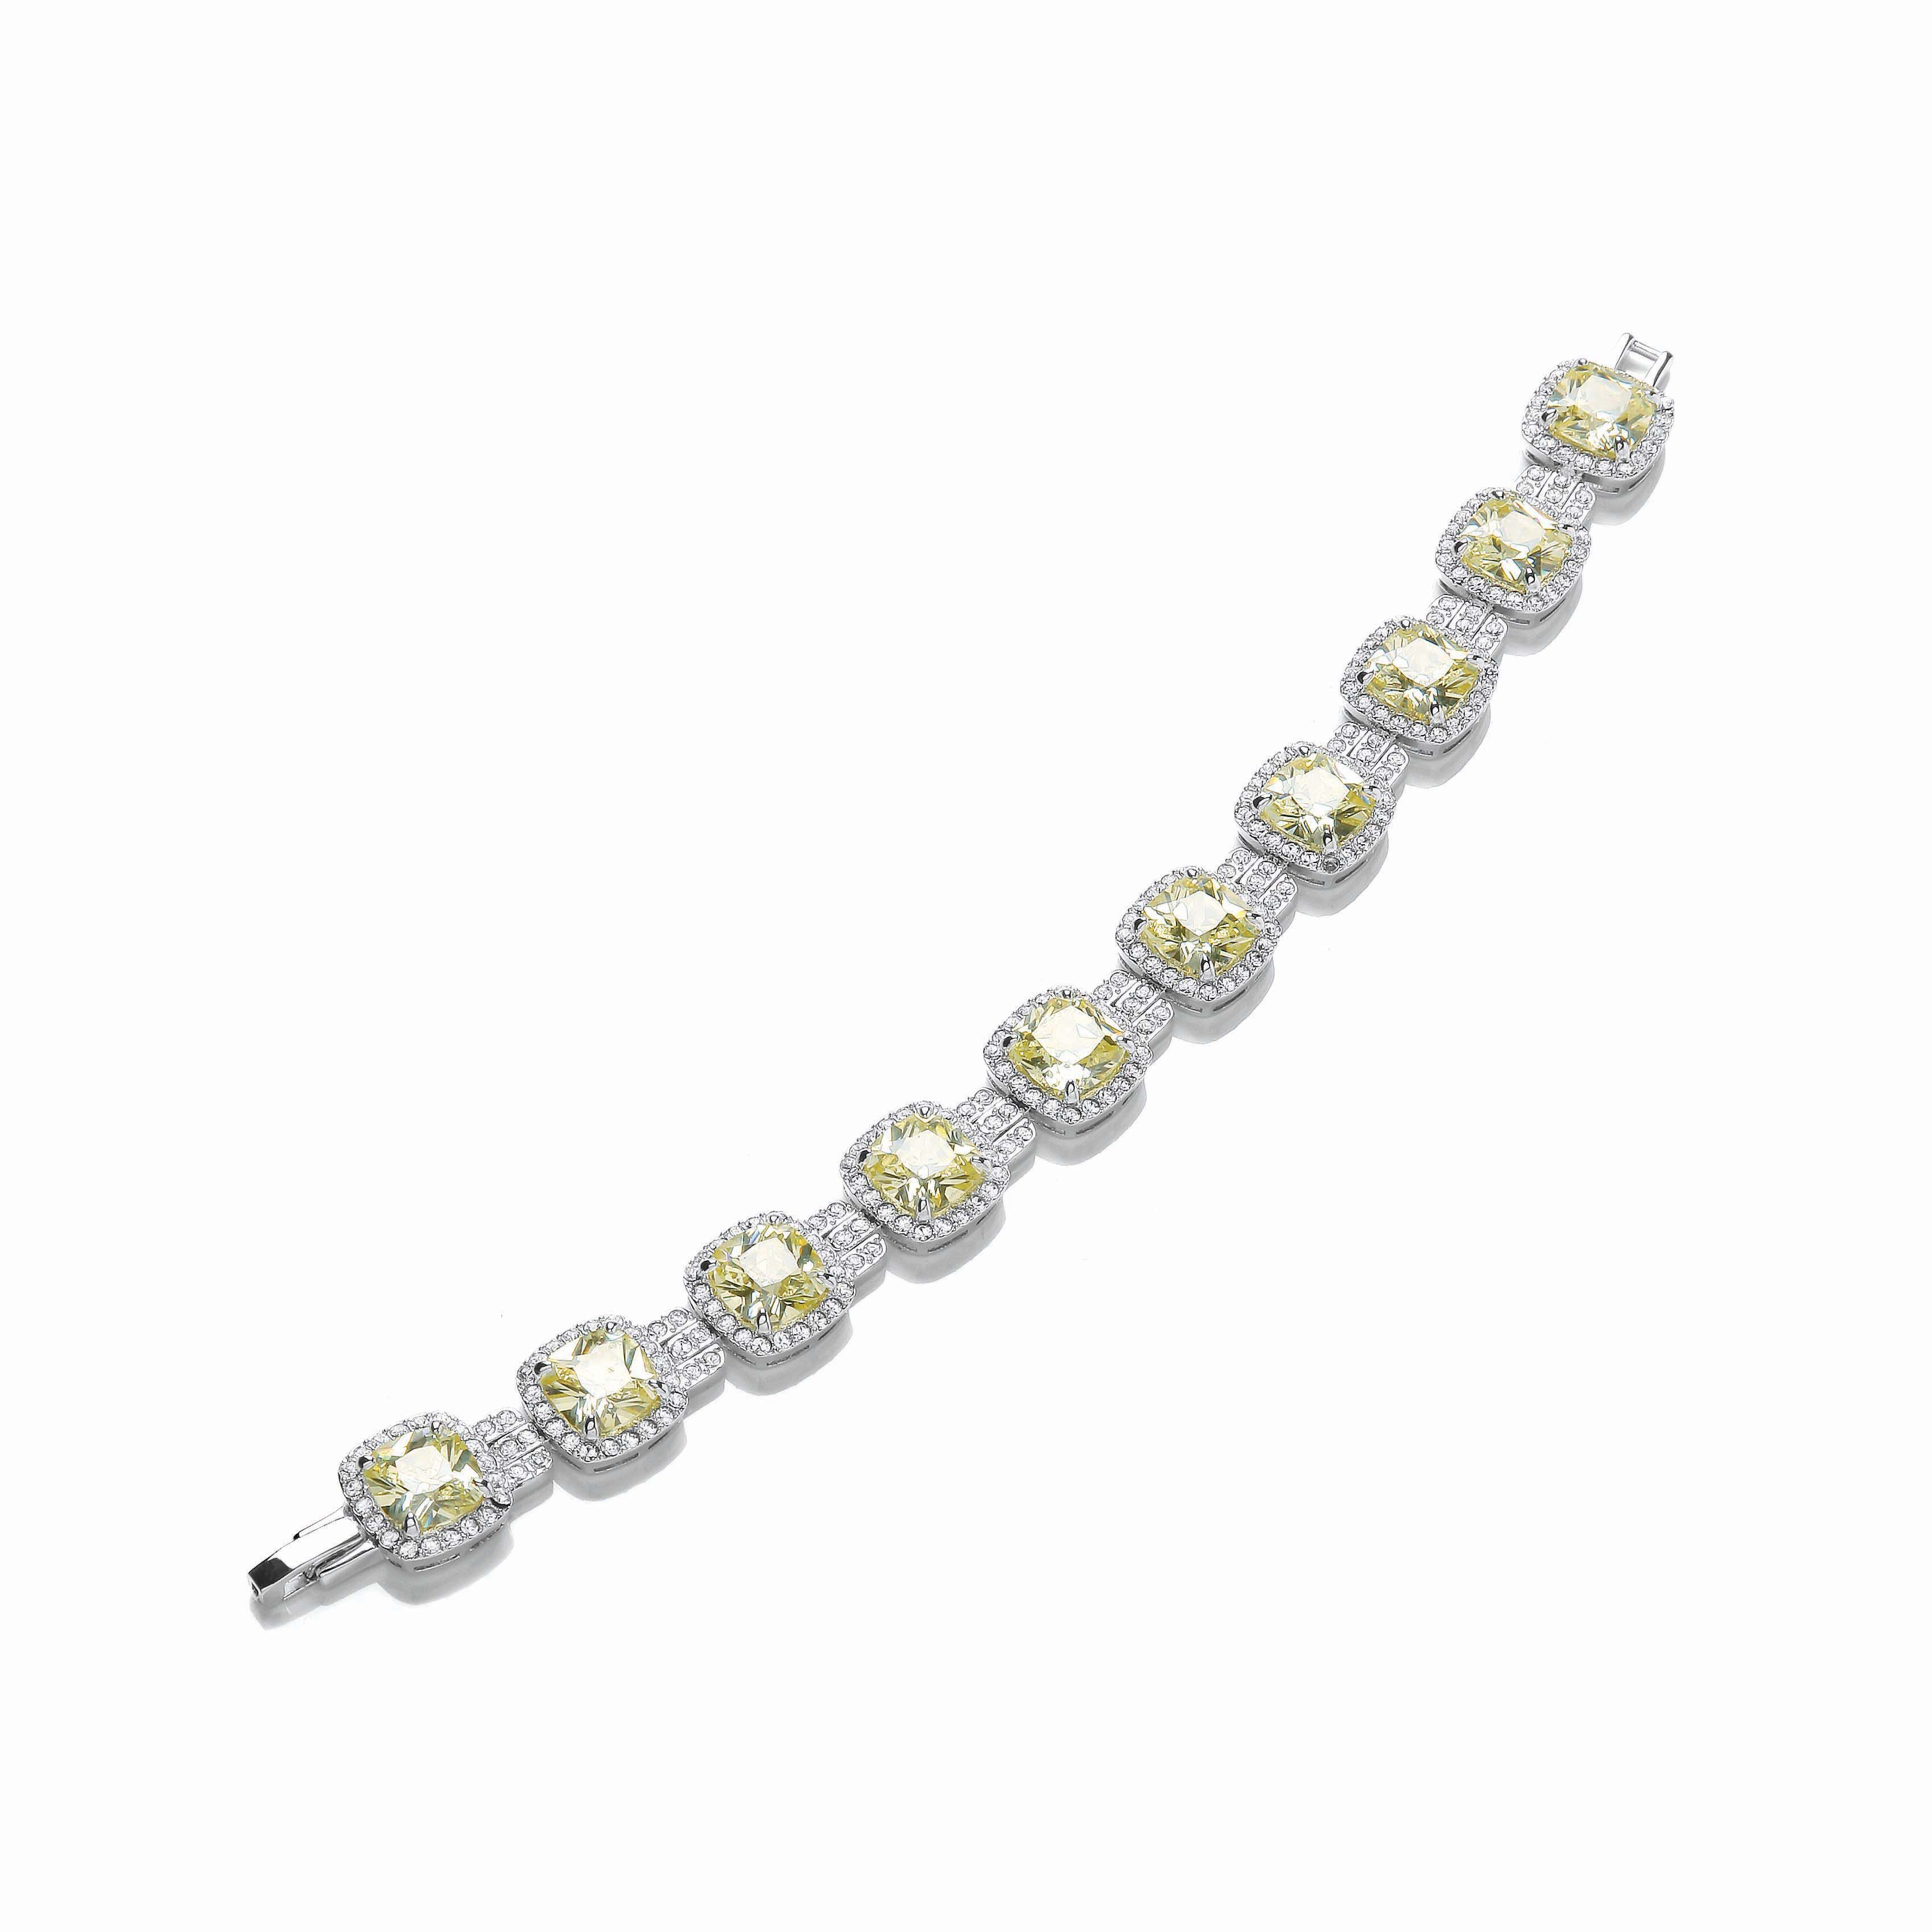 Rhodium canary cushion bracelet